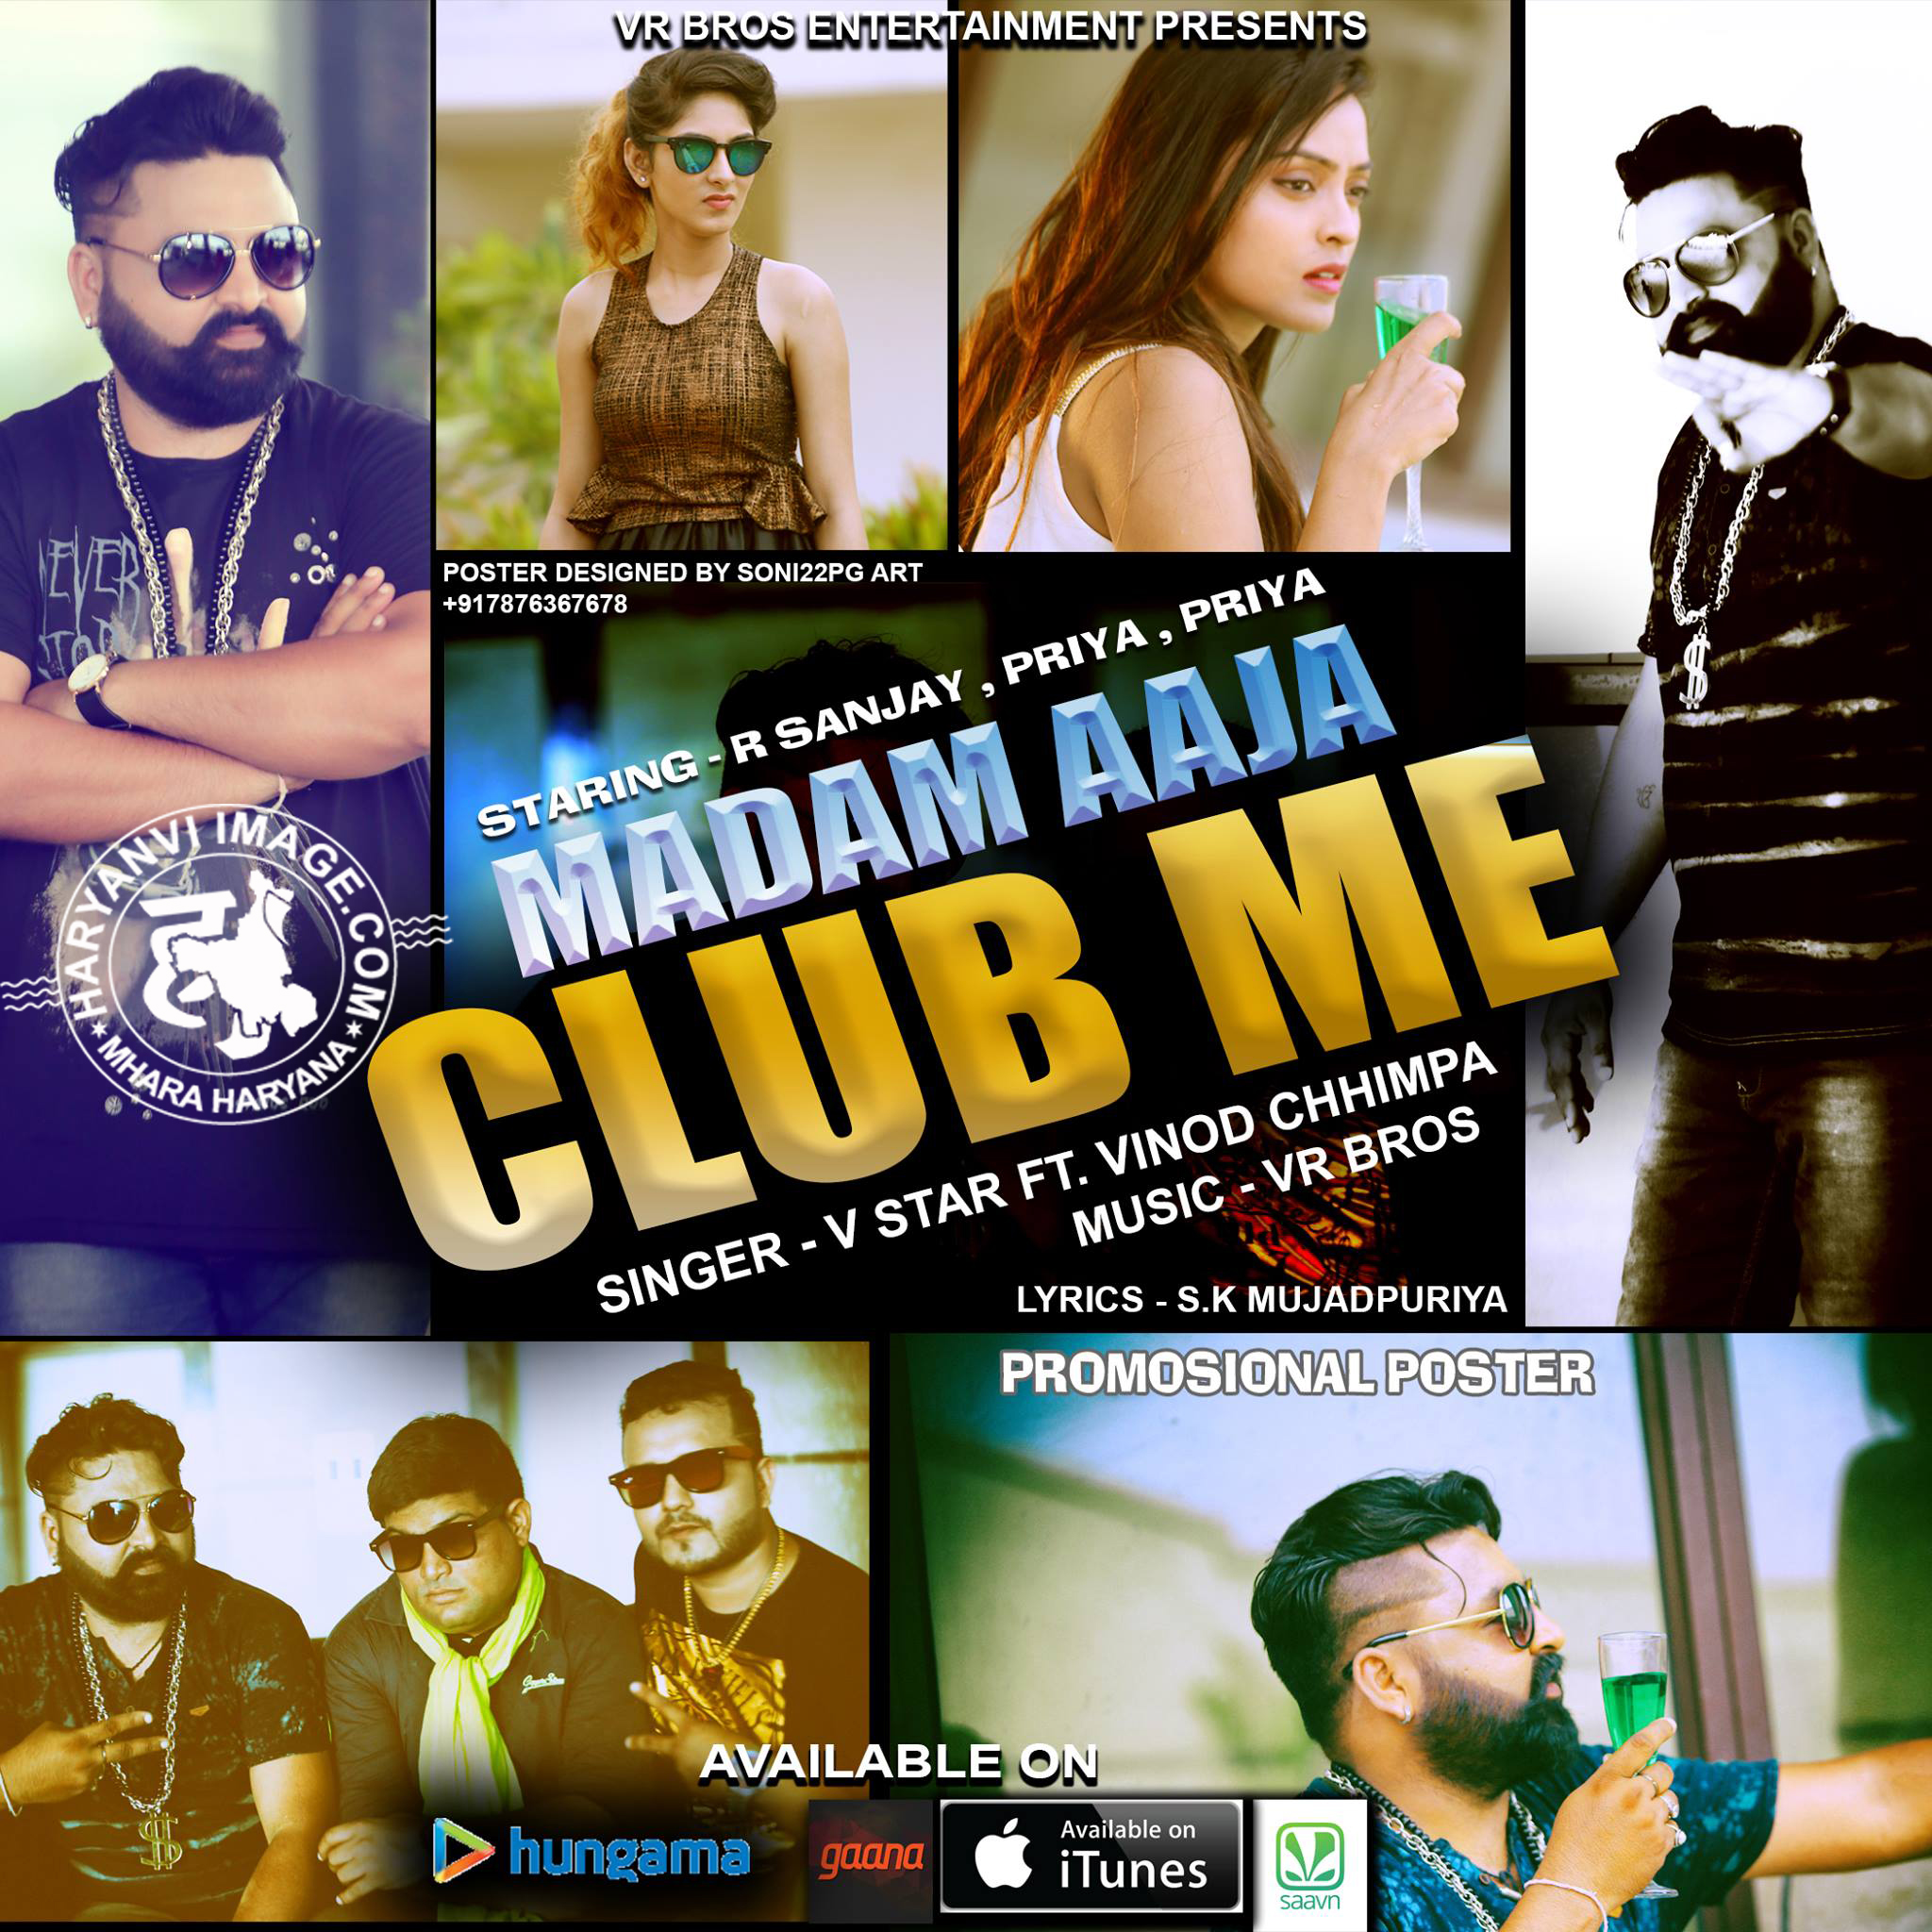 Madam Aaja Club Me - VR Bros